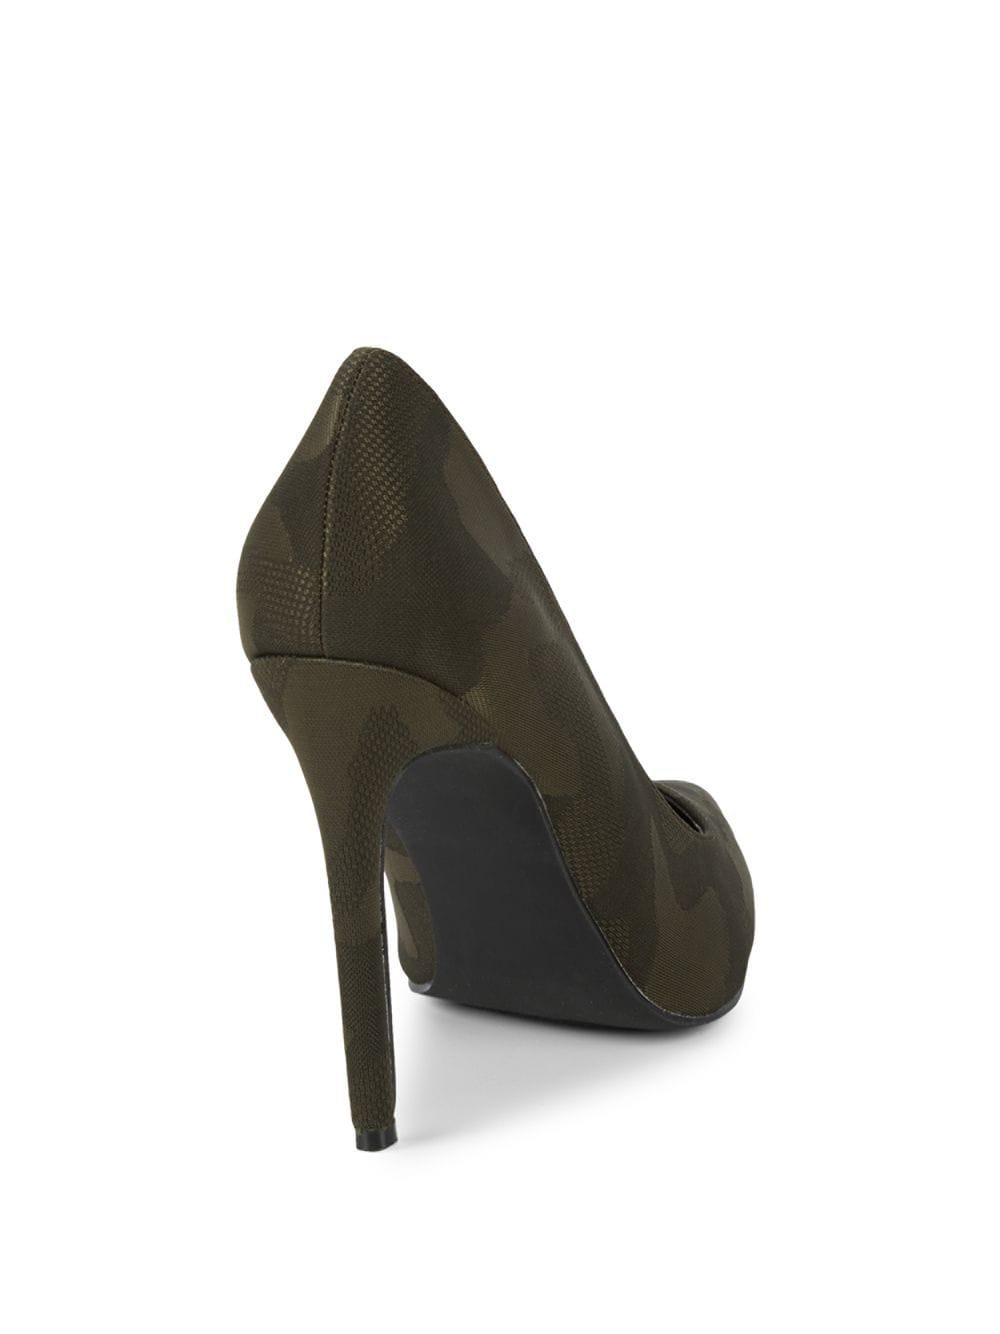 48b935be95e Steve Madden Olena Camouflage Point-toe Pumps - Lyst